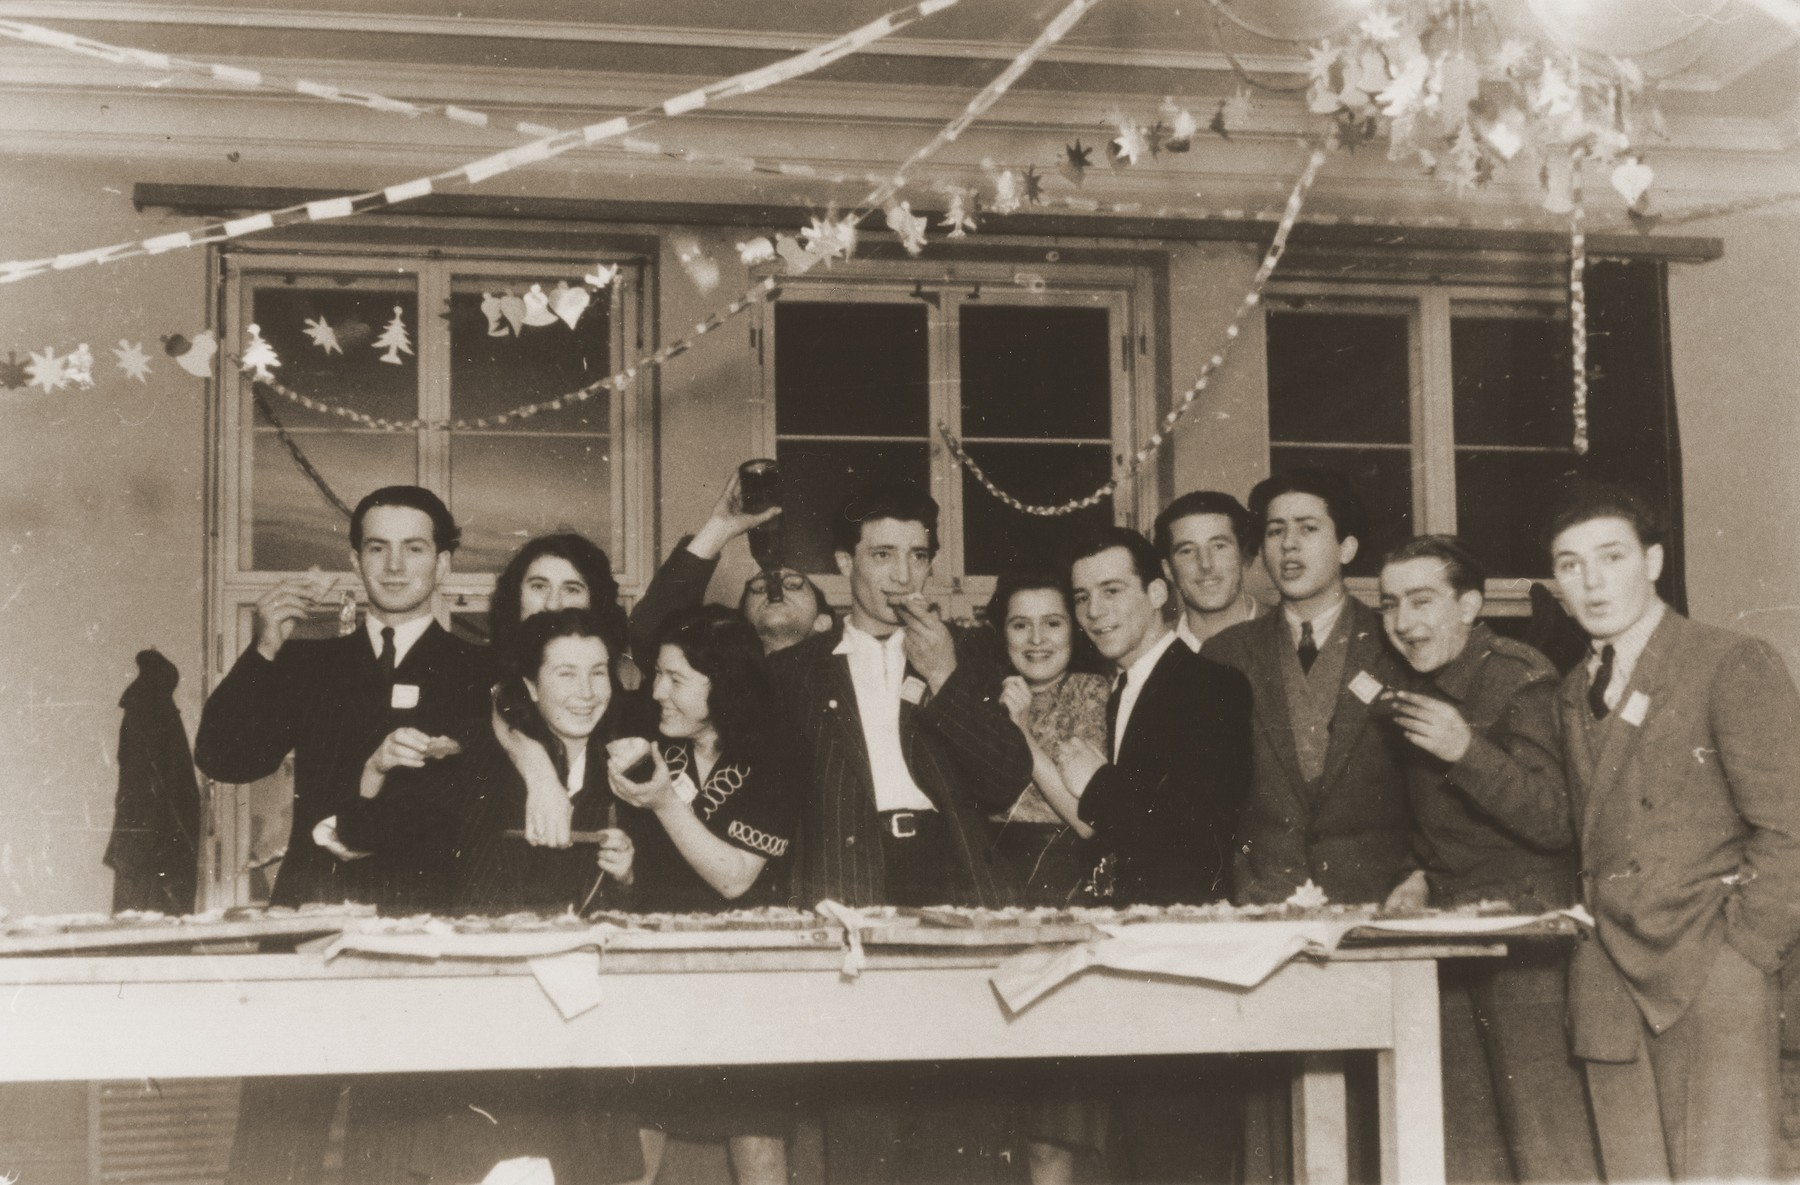 Members of the Kibbutz Haghibor hachshara hold a party in the Bergen-Belsen DP camp.